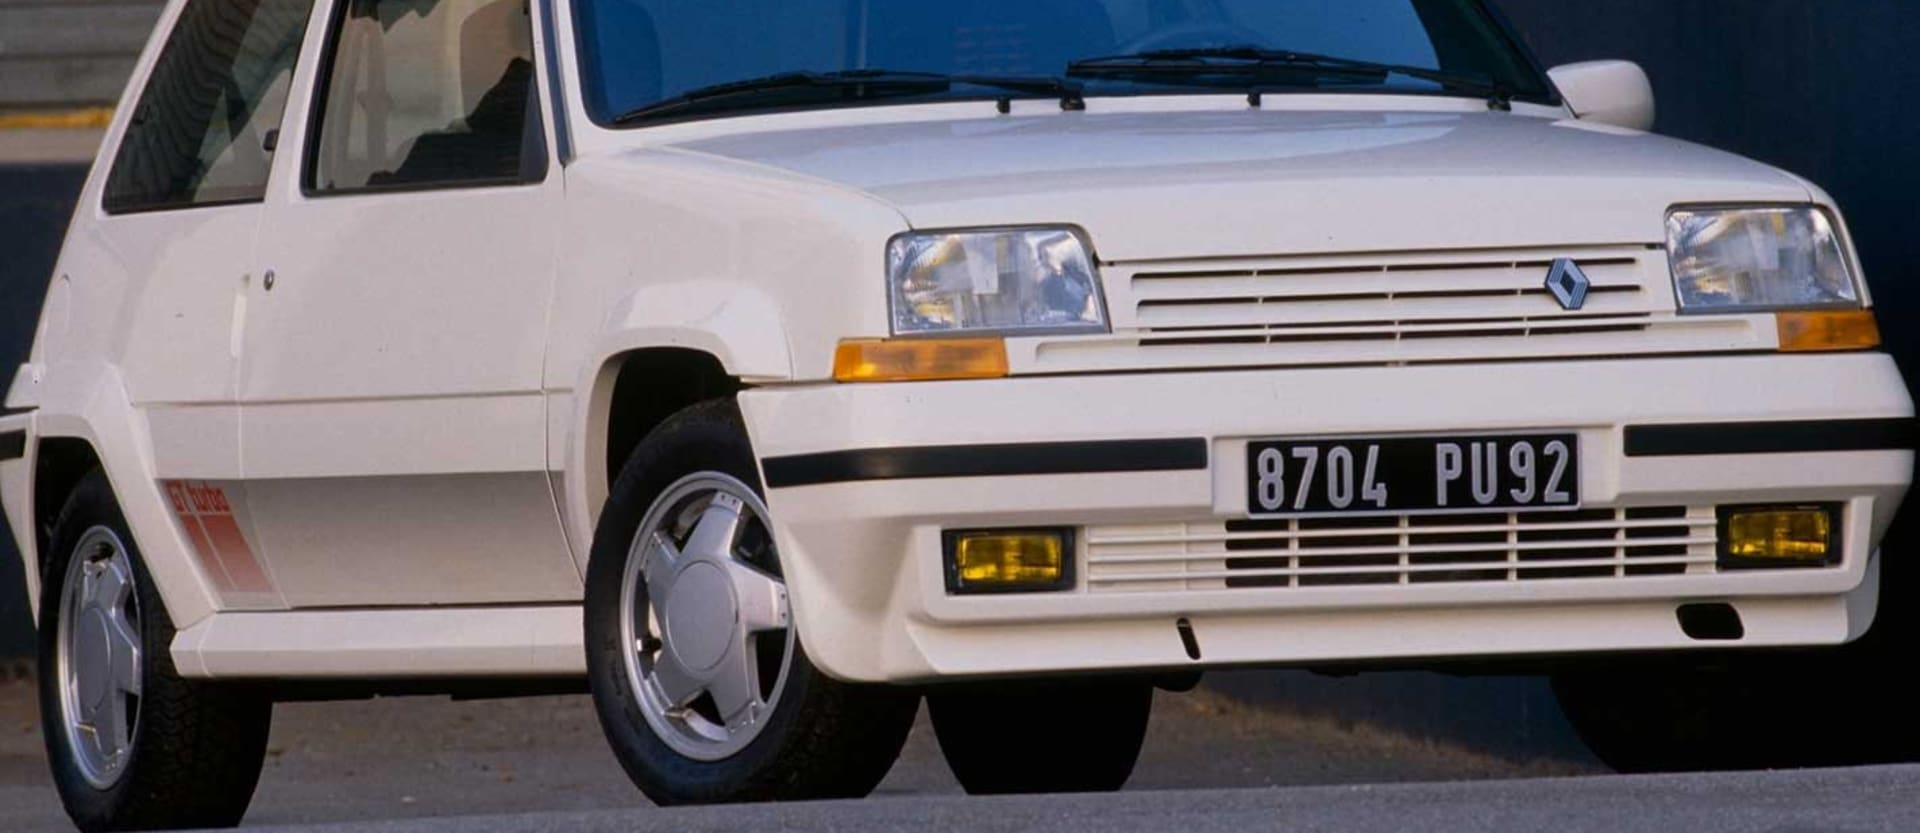 1985 Renault 5 GT Turbo Fast Car History Lesson feature